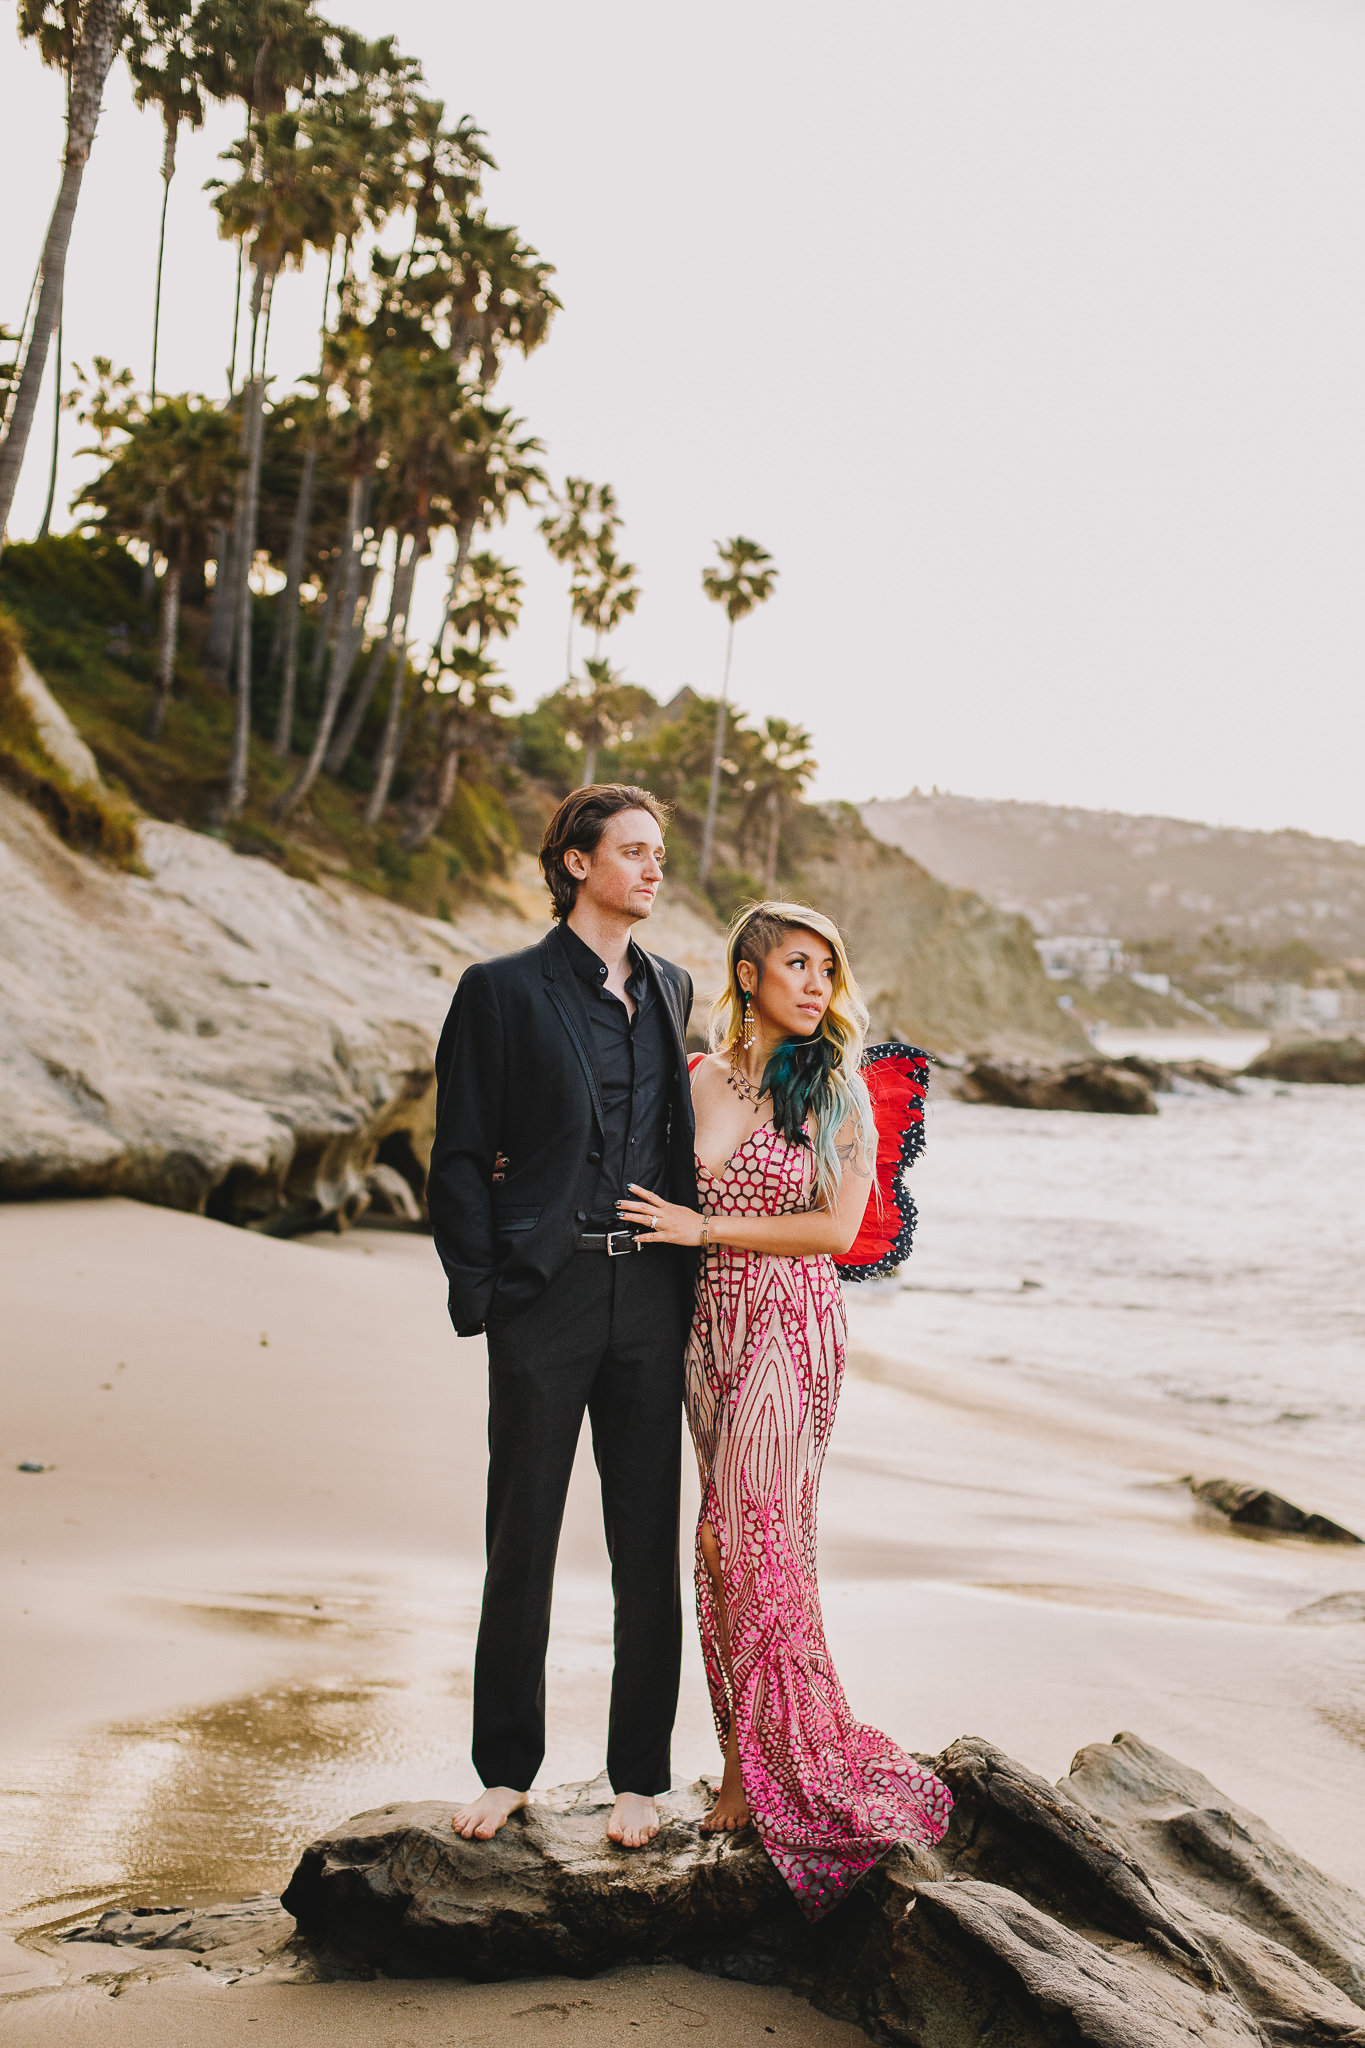 Archer Inspired Photography Amy and Kyle Wedding Engagement Session Long Beach Los Angeles California SoCal Best Top Rated Affordable Lifestyle Documentary Natural Light Fun Offbeat Unique Photographer-12.jpg